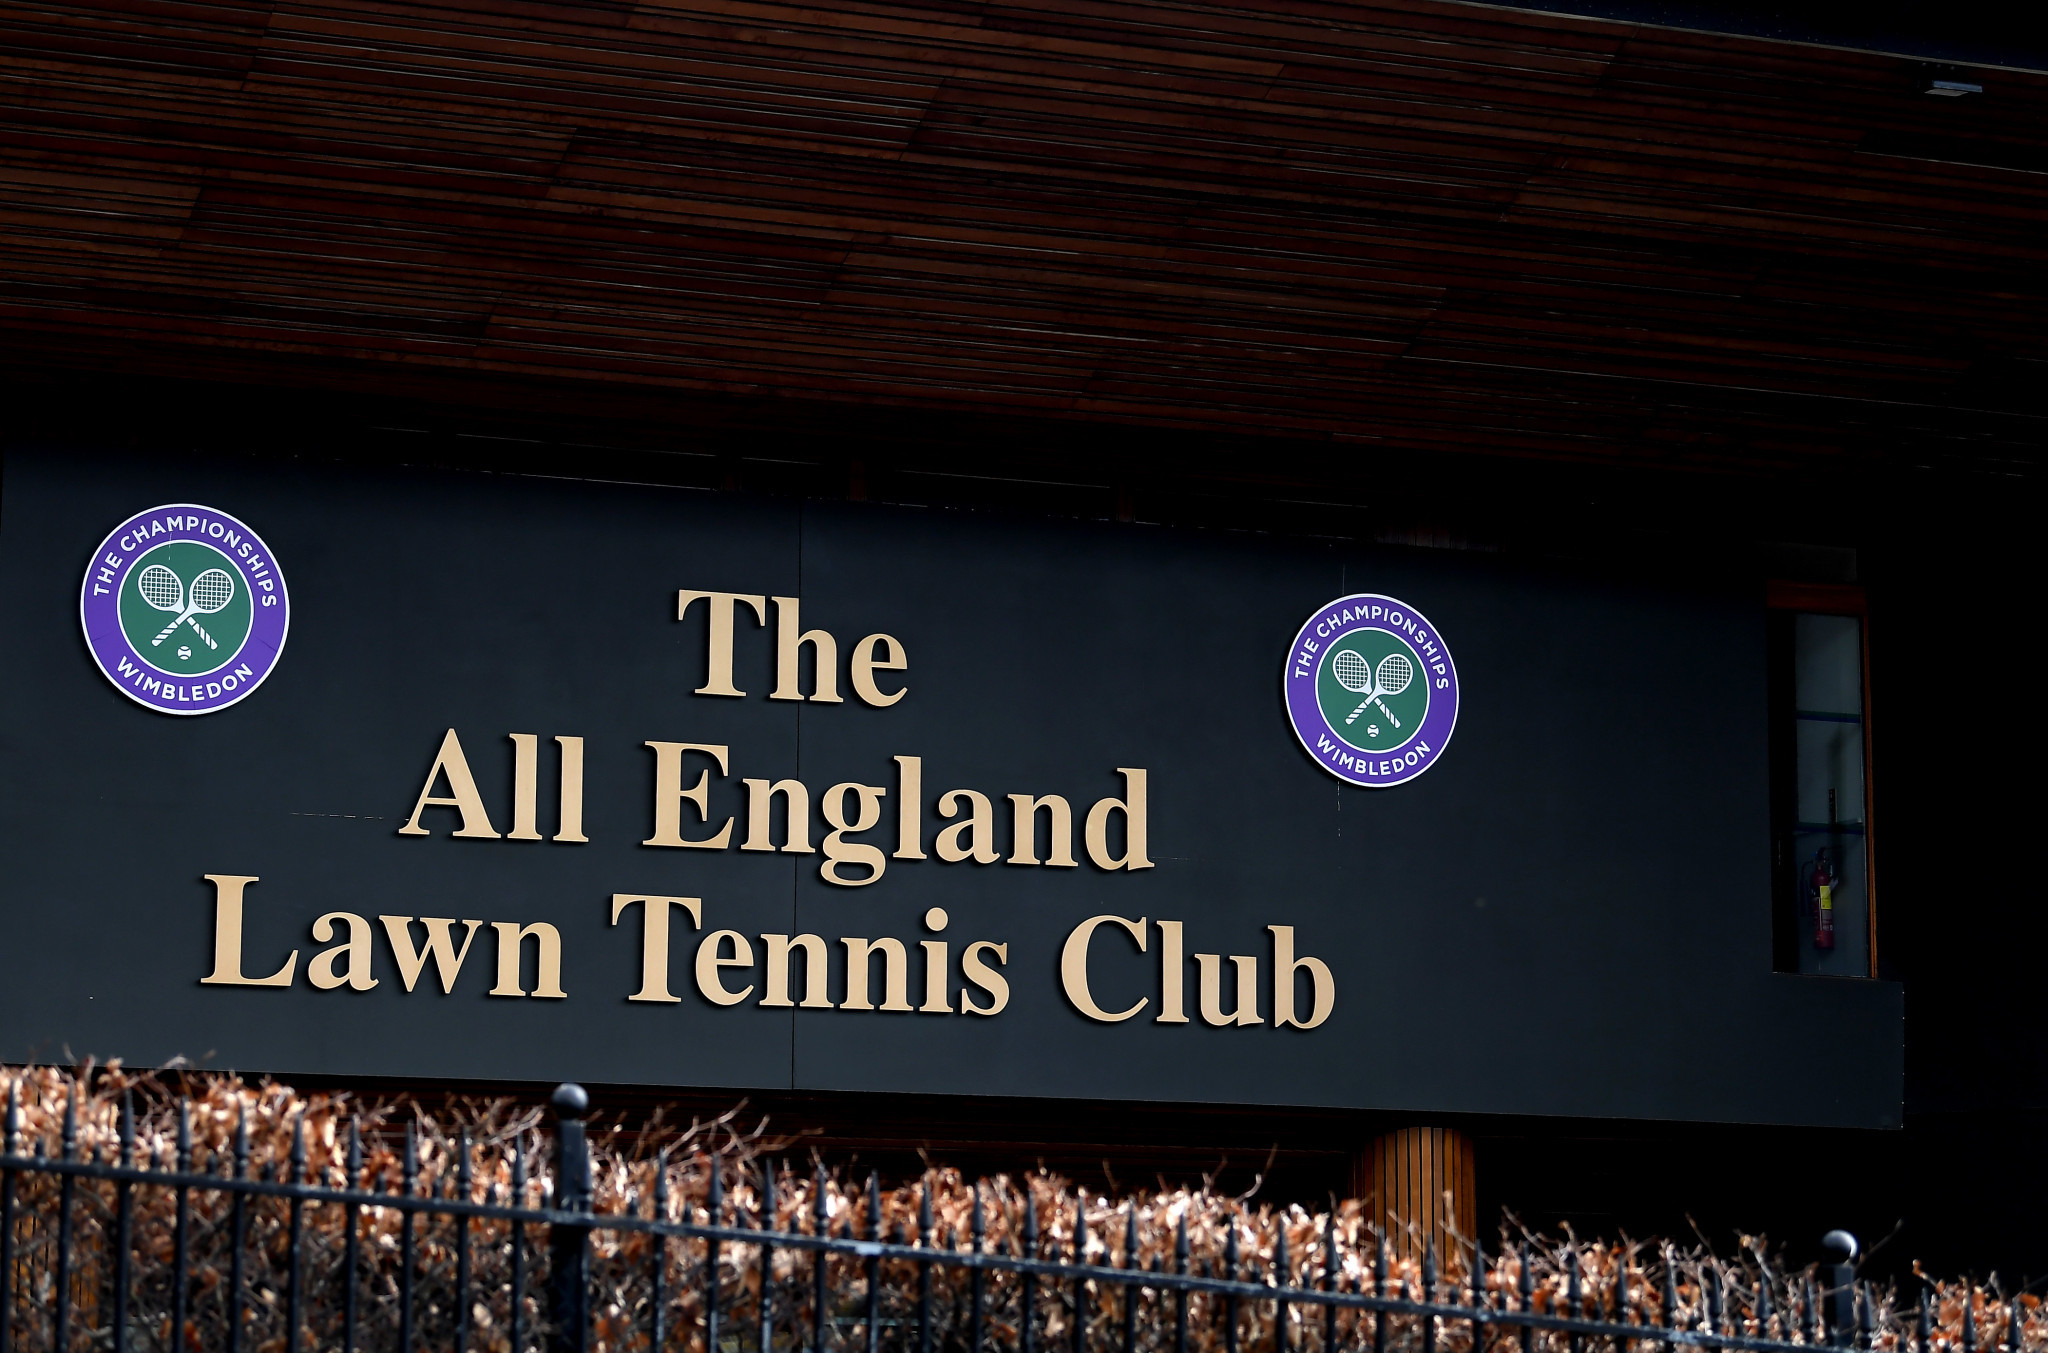 AELTC announced a series of contributions to support the national and international recovery from the coronavirus pandemic ©Getty Images